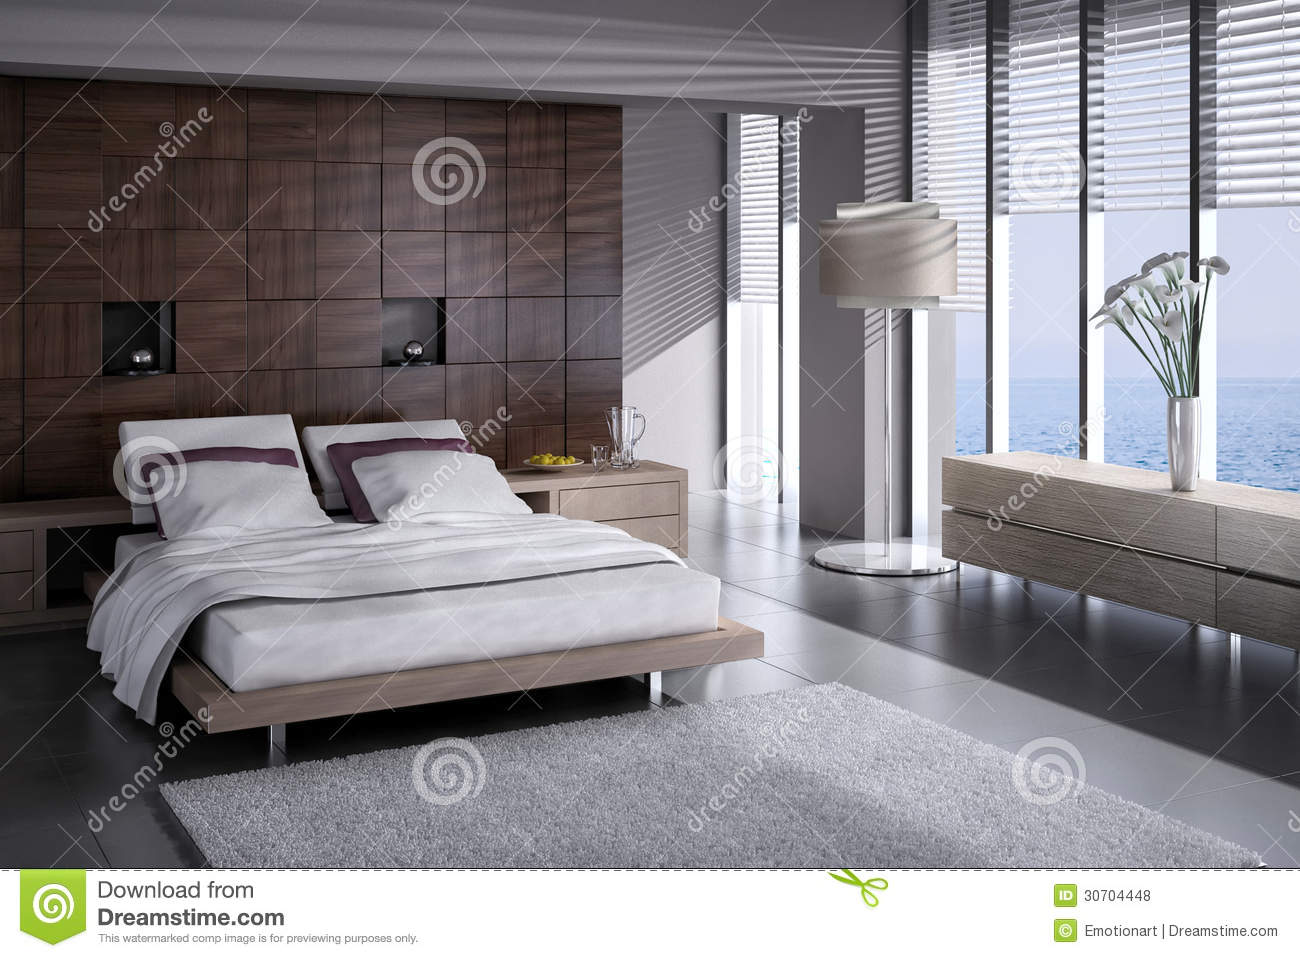 Chambre coucher exclusive de conception architecture for Conception interieur